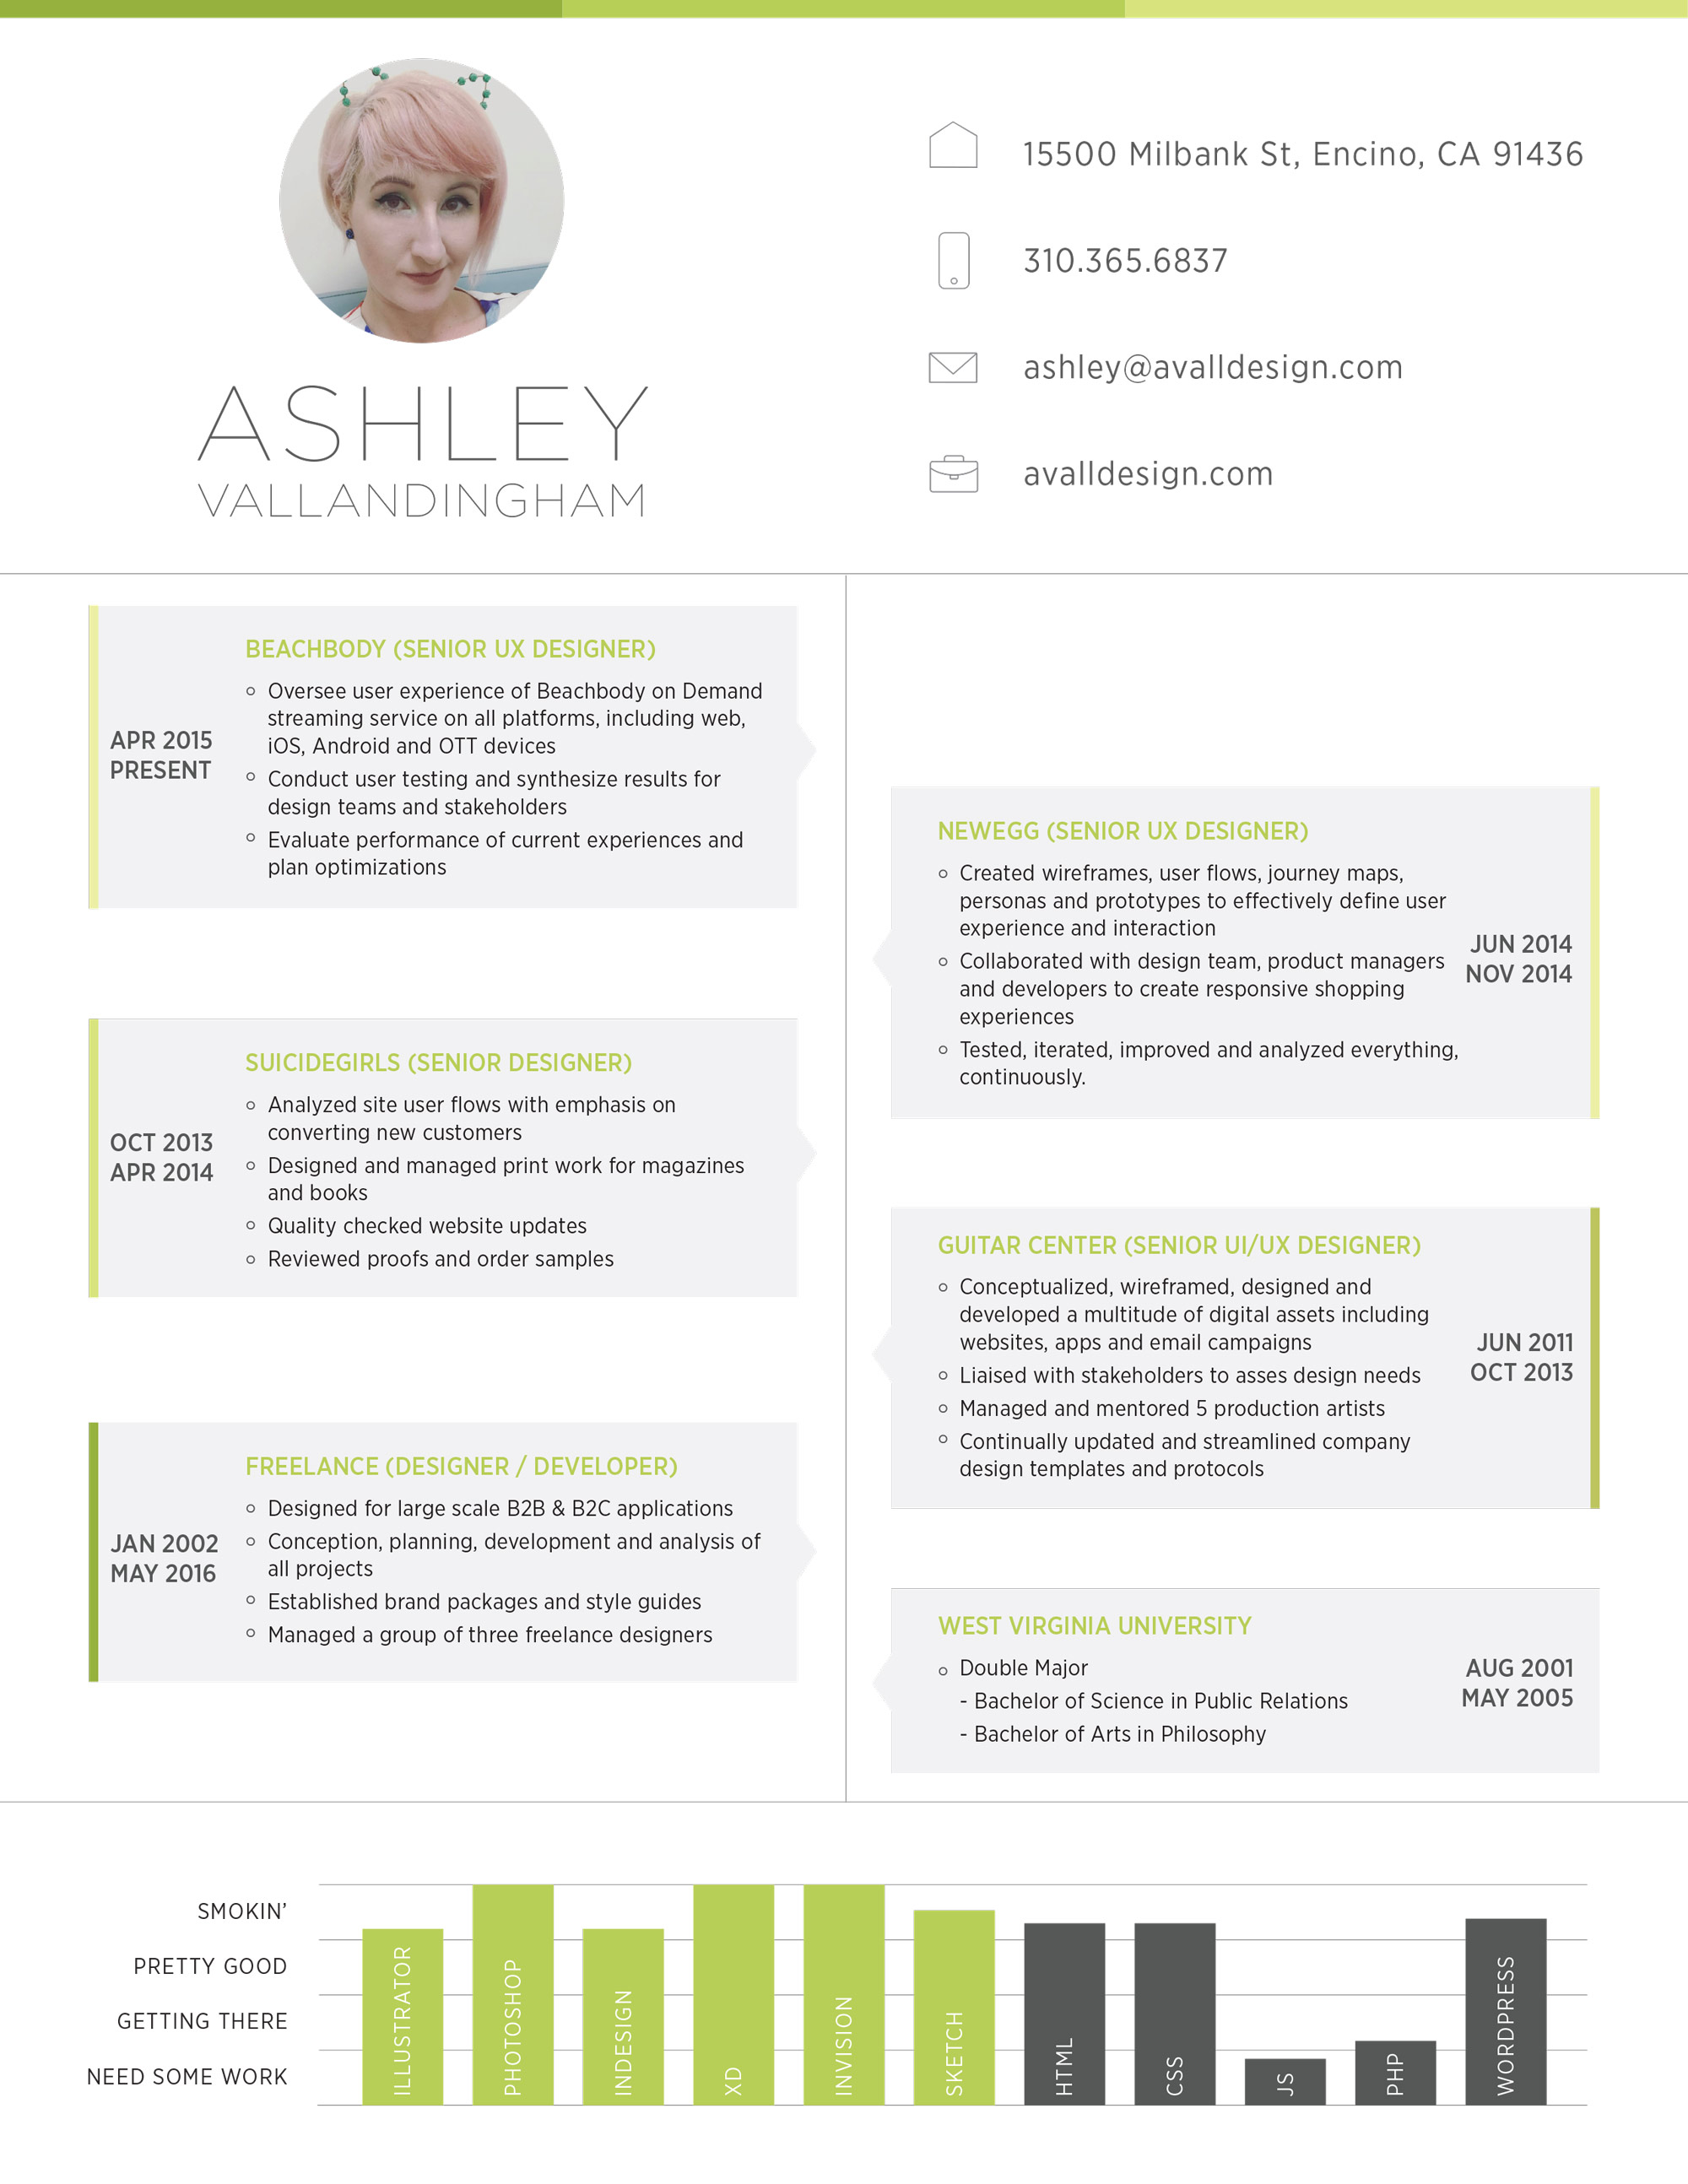 Ashley's Resume